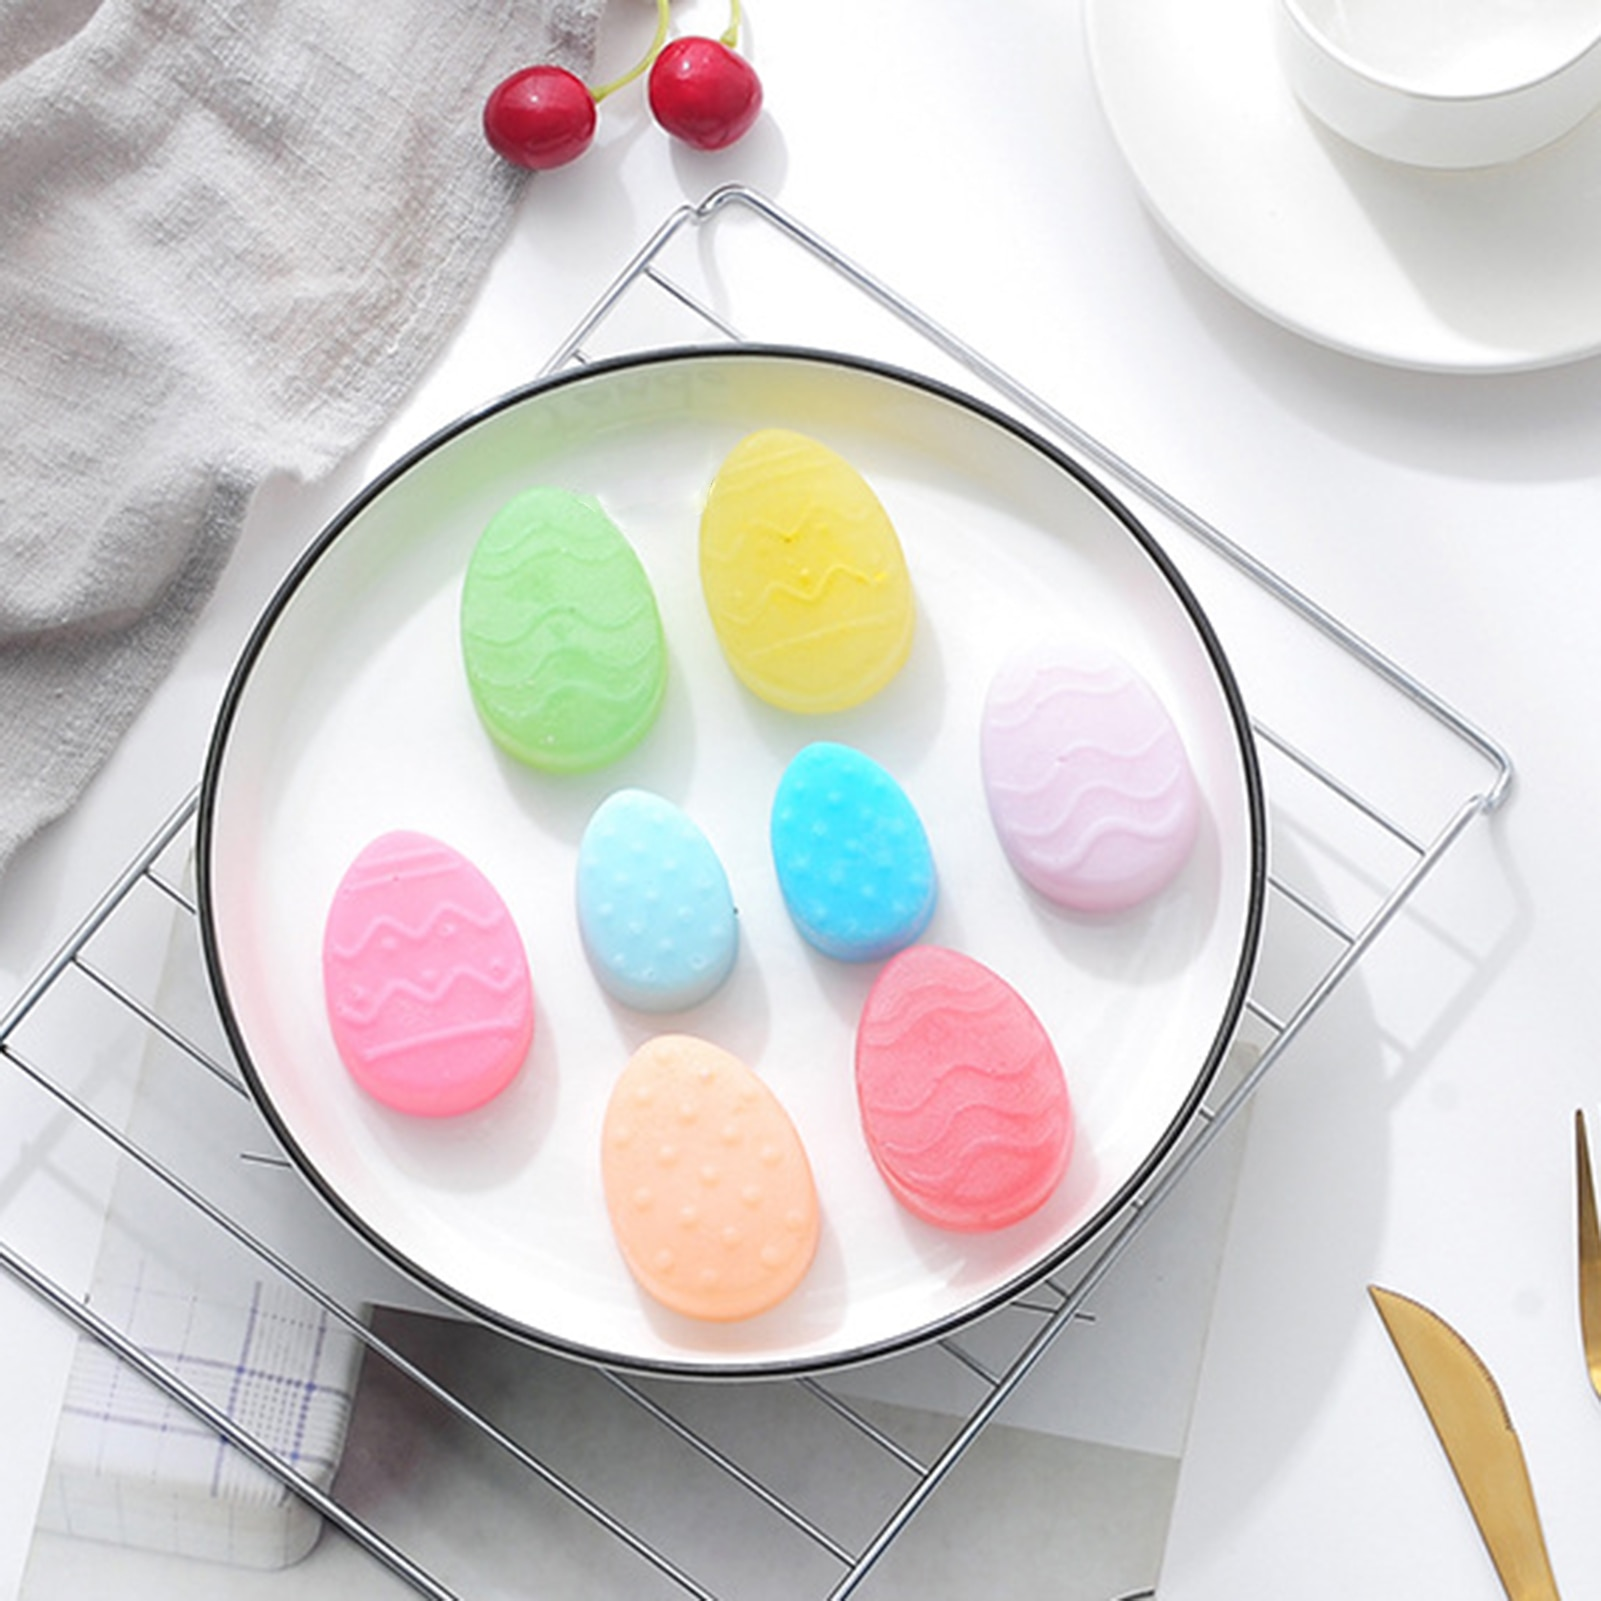 10 Cells Easter Egg Cake Mold with 2 Different Size Holes Silicone Multifunctional Baking Pan for Soap Candle Cookies F2